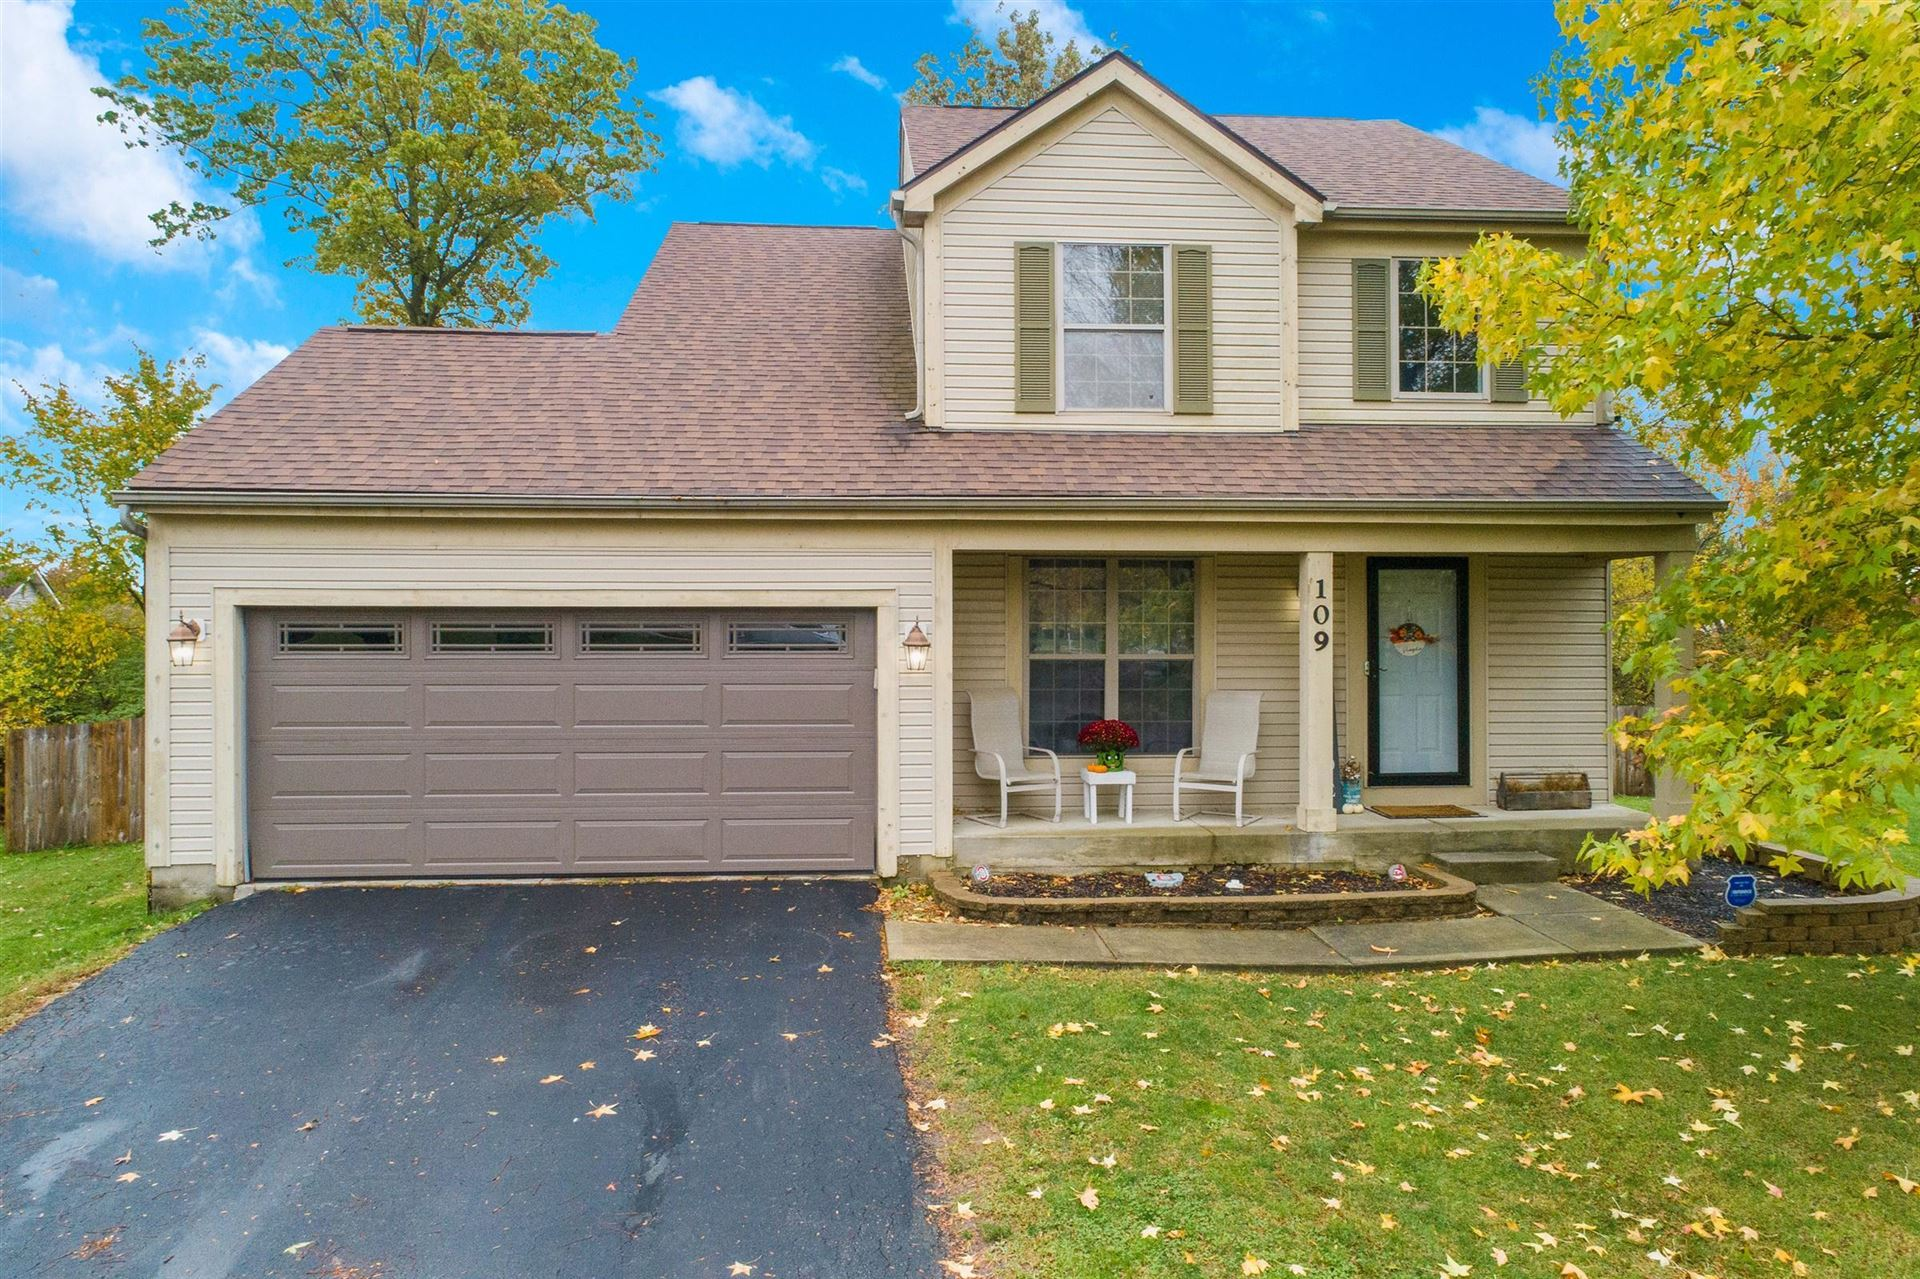 Photo of 109 Kettering Bend, Delaware, OH 43015 (MLS # 220037552)